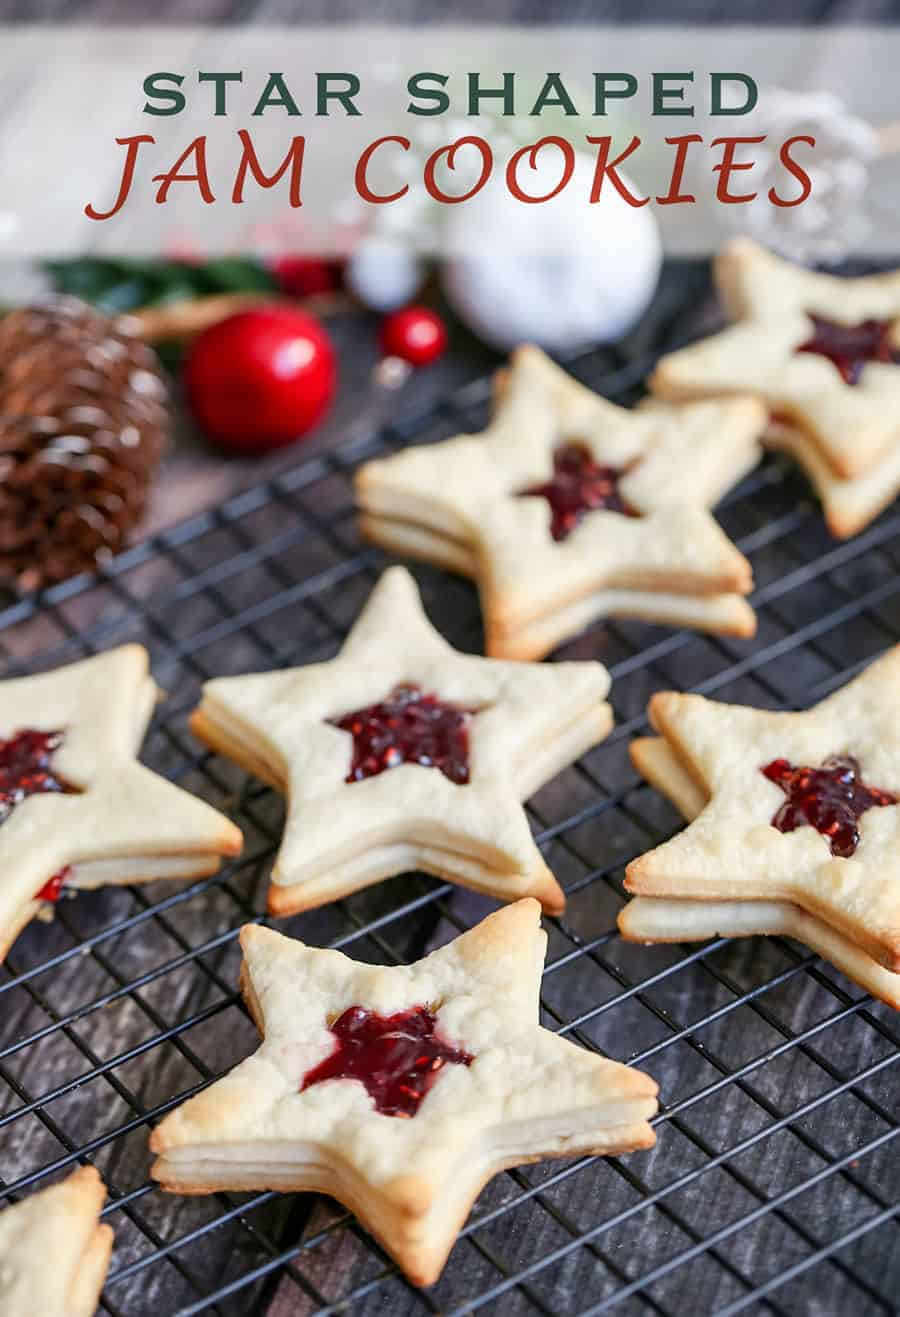 Star-Shaped Jam Cookies